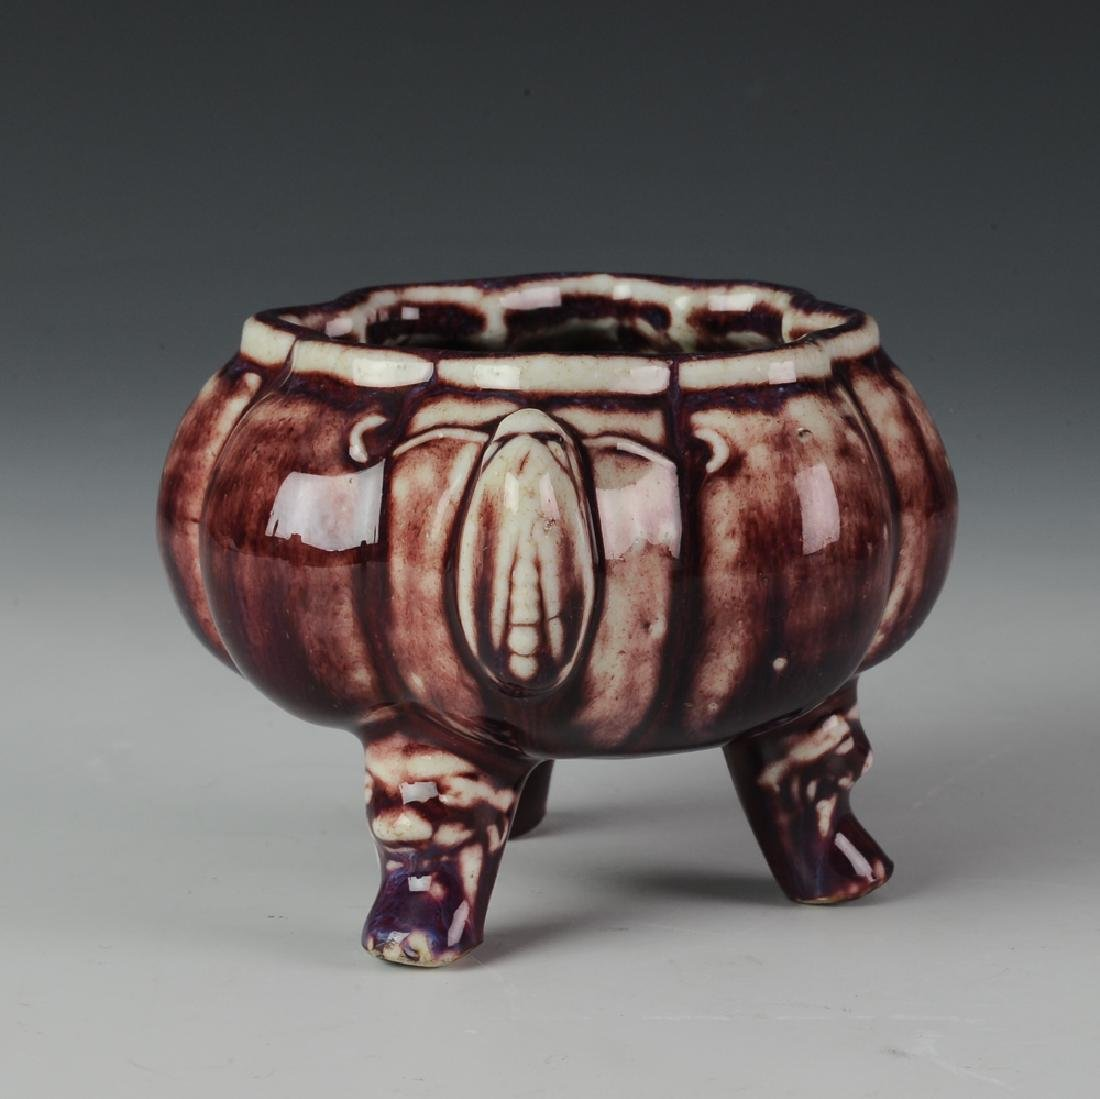 Chinese Flambe Tripod Incense Burner, 18-19th C - 3